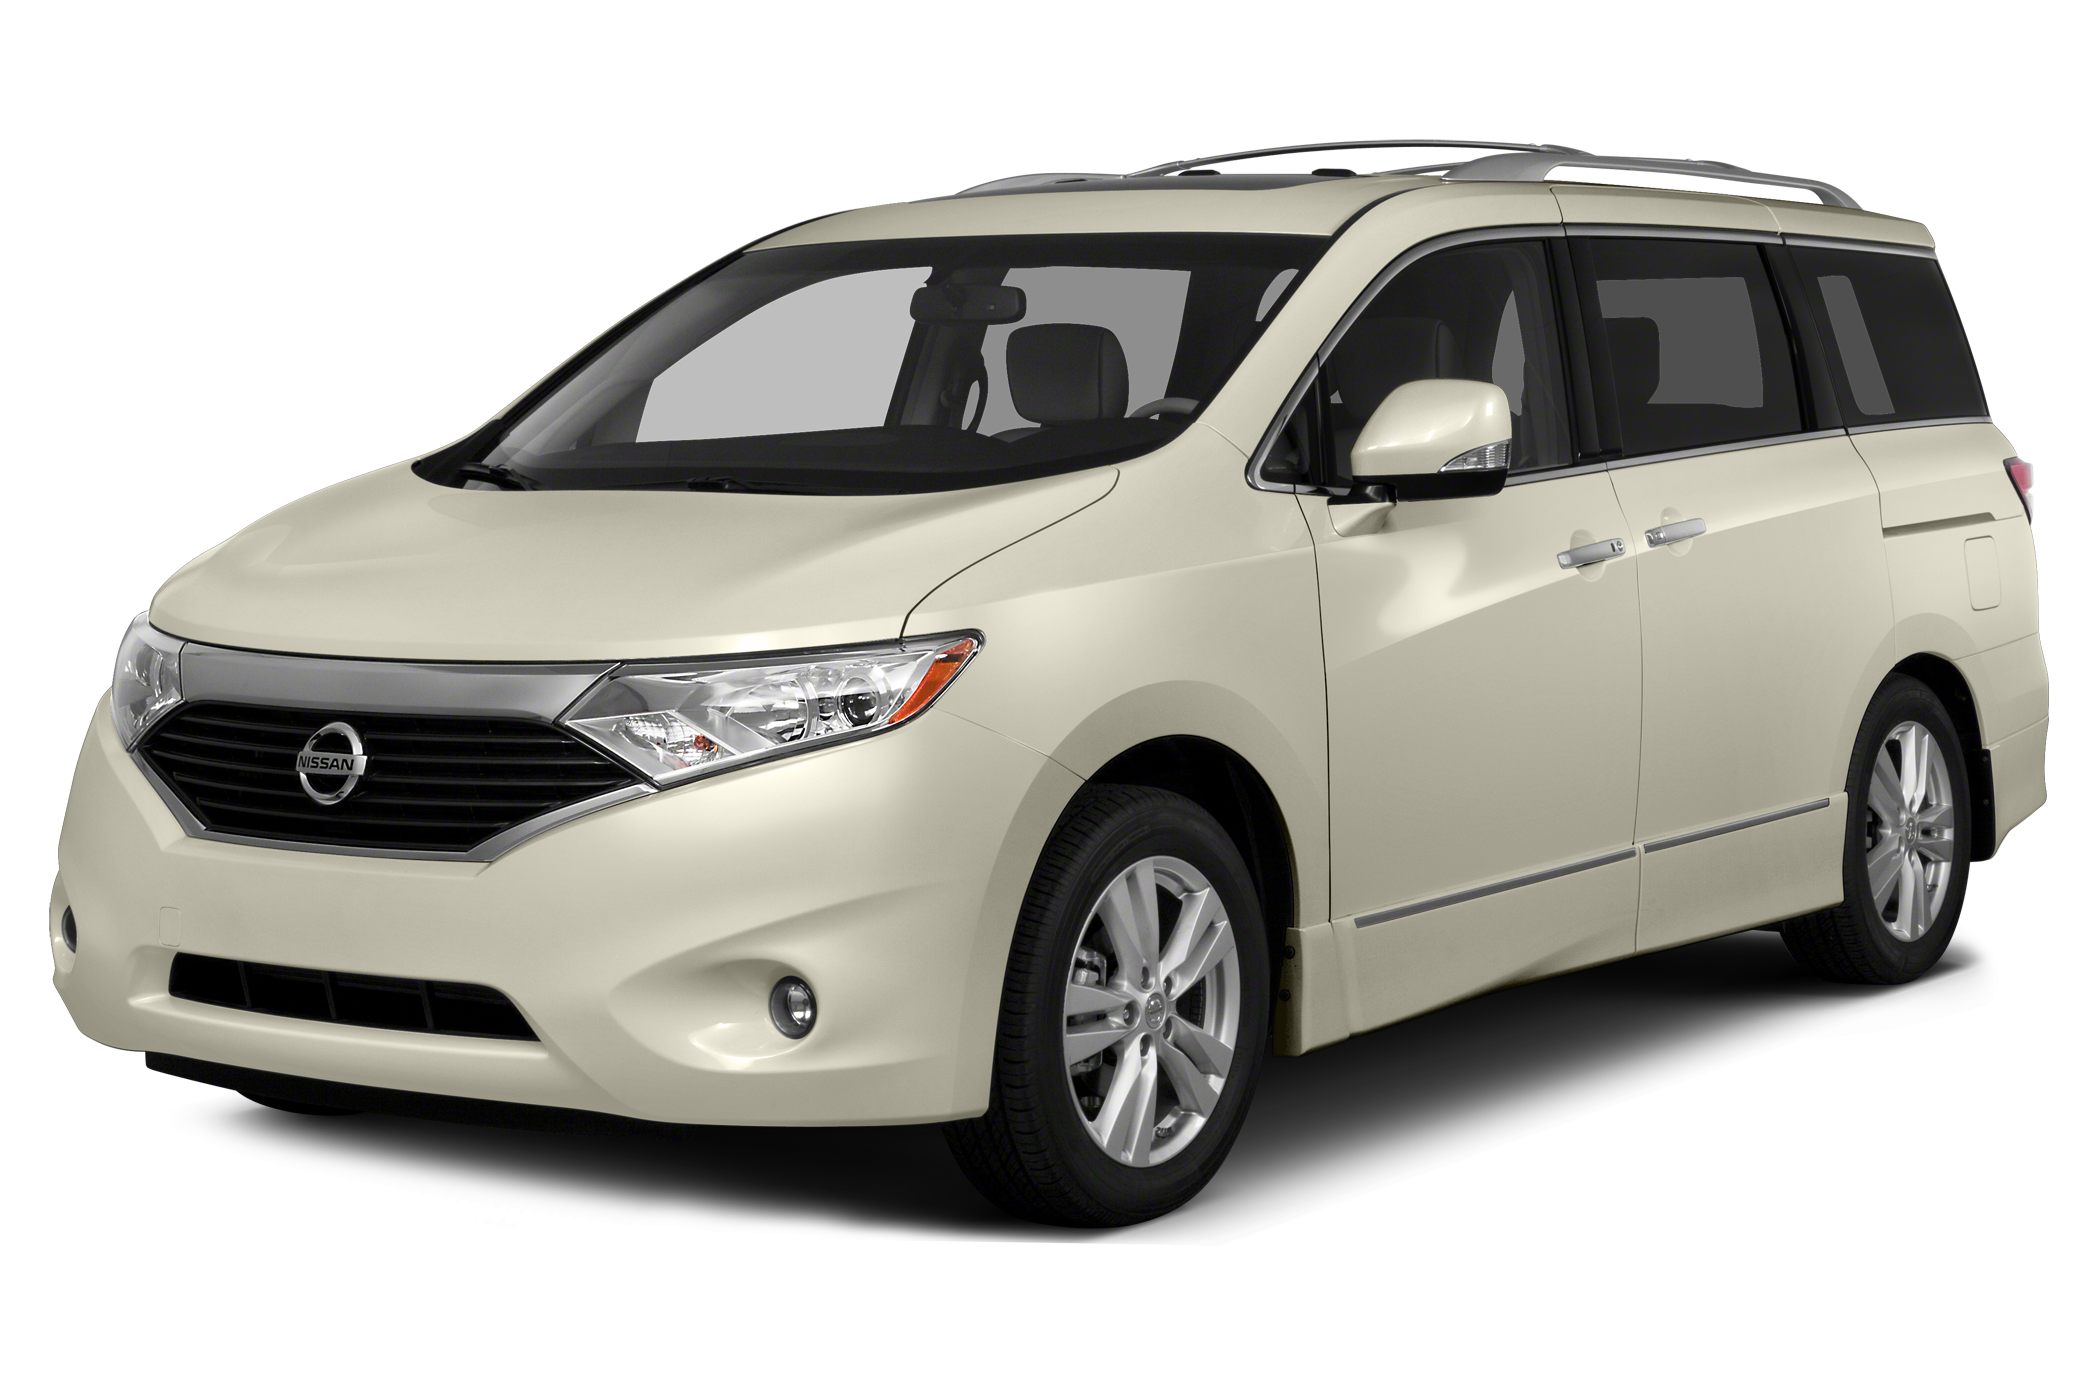 2015 Nissan Quest SL Minivan for sale in Beech Island for $31,377 with 10 miles